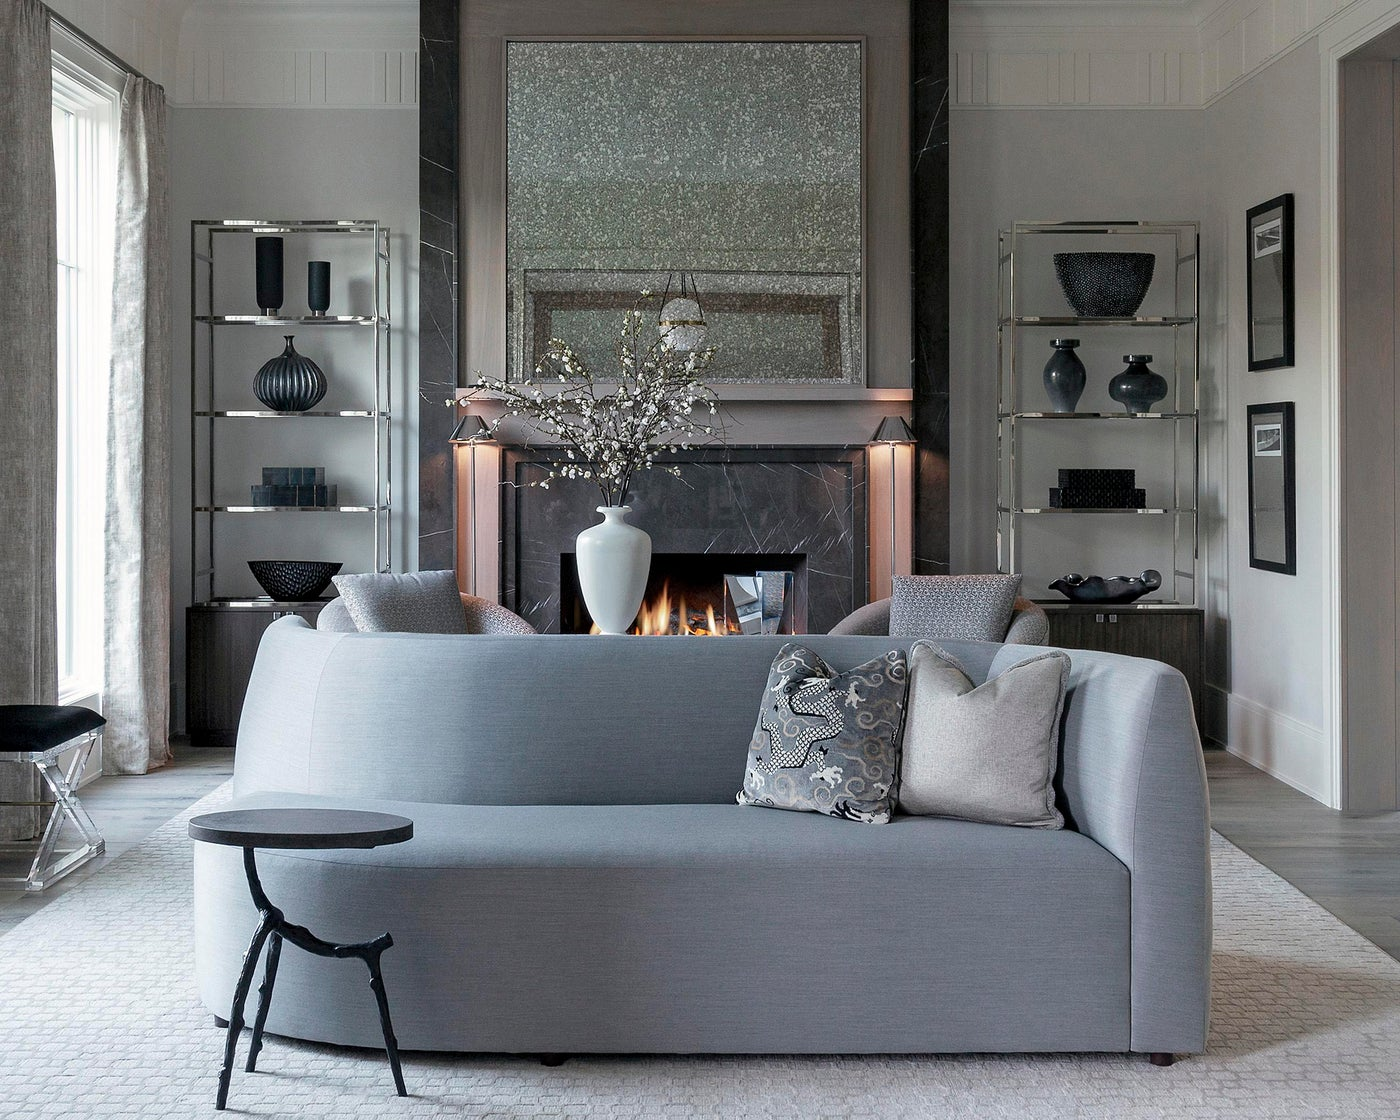 Formal Living with Silver Accents